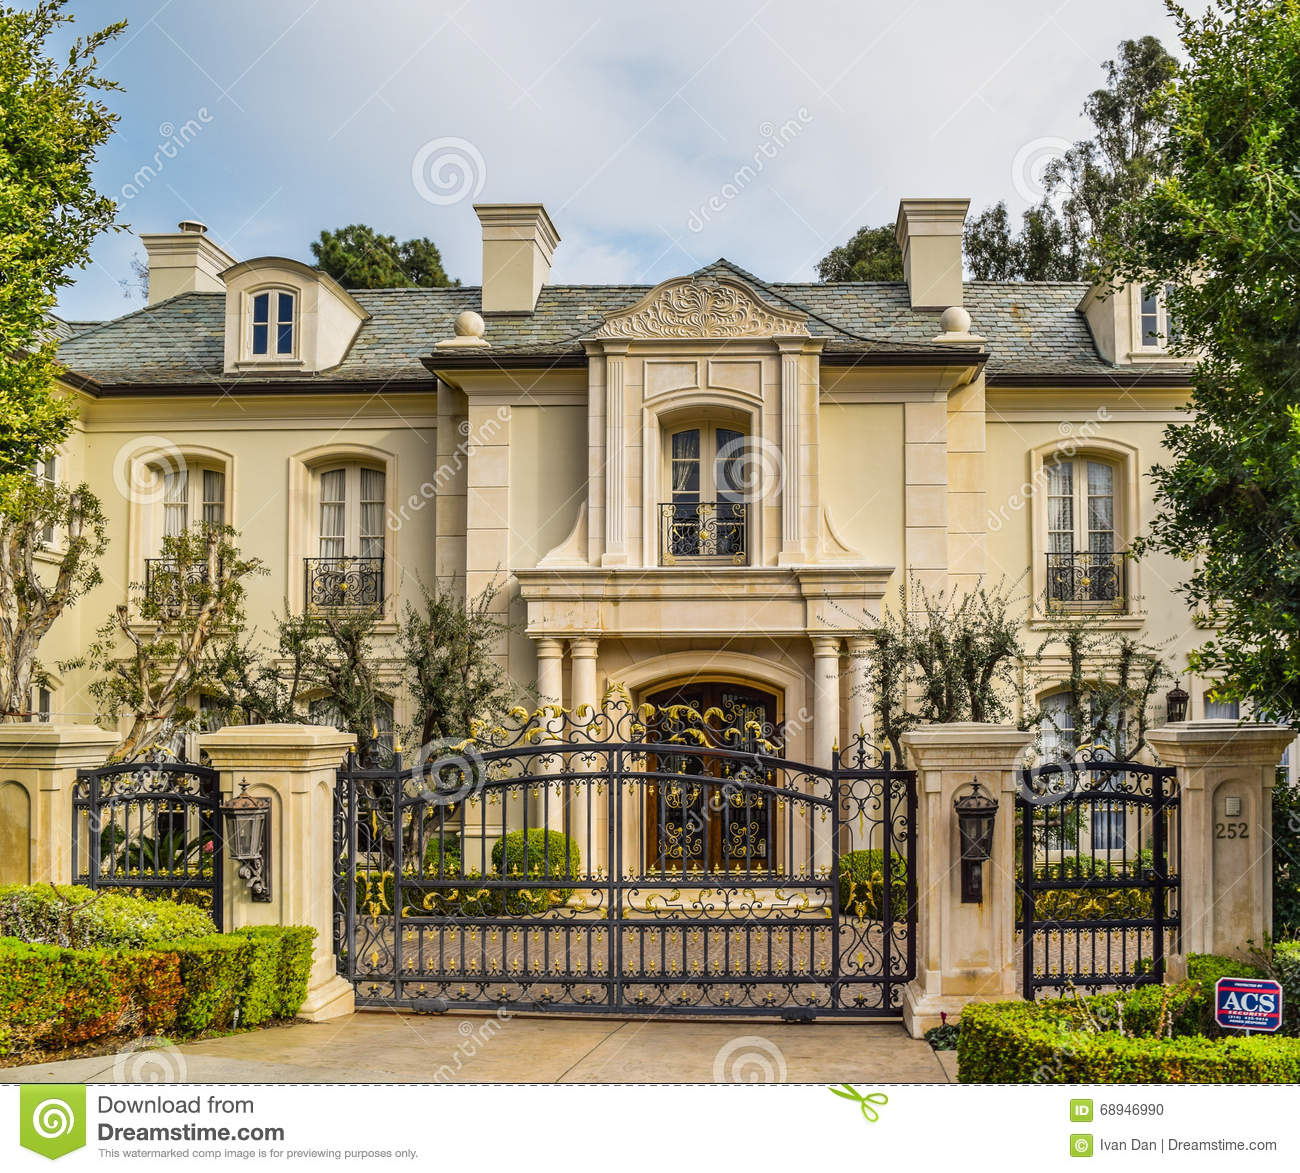 Dream Homes In Los Angeles Mansions: California Dream Houses Beverly Hills Editorial Image